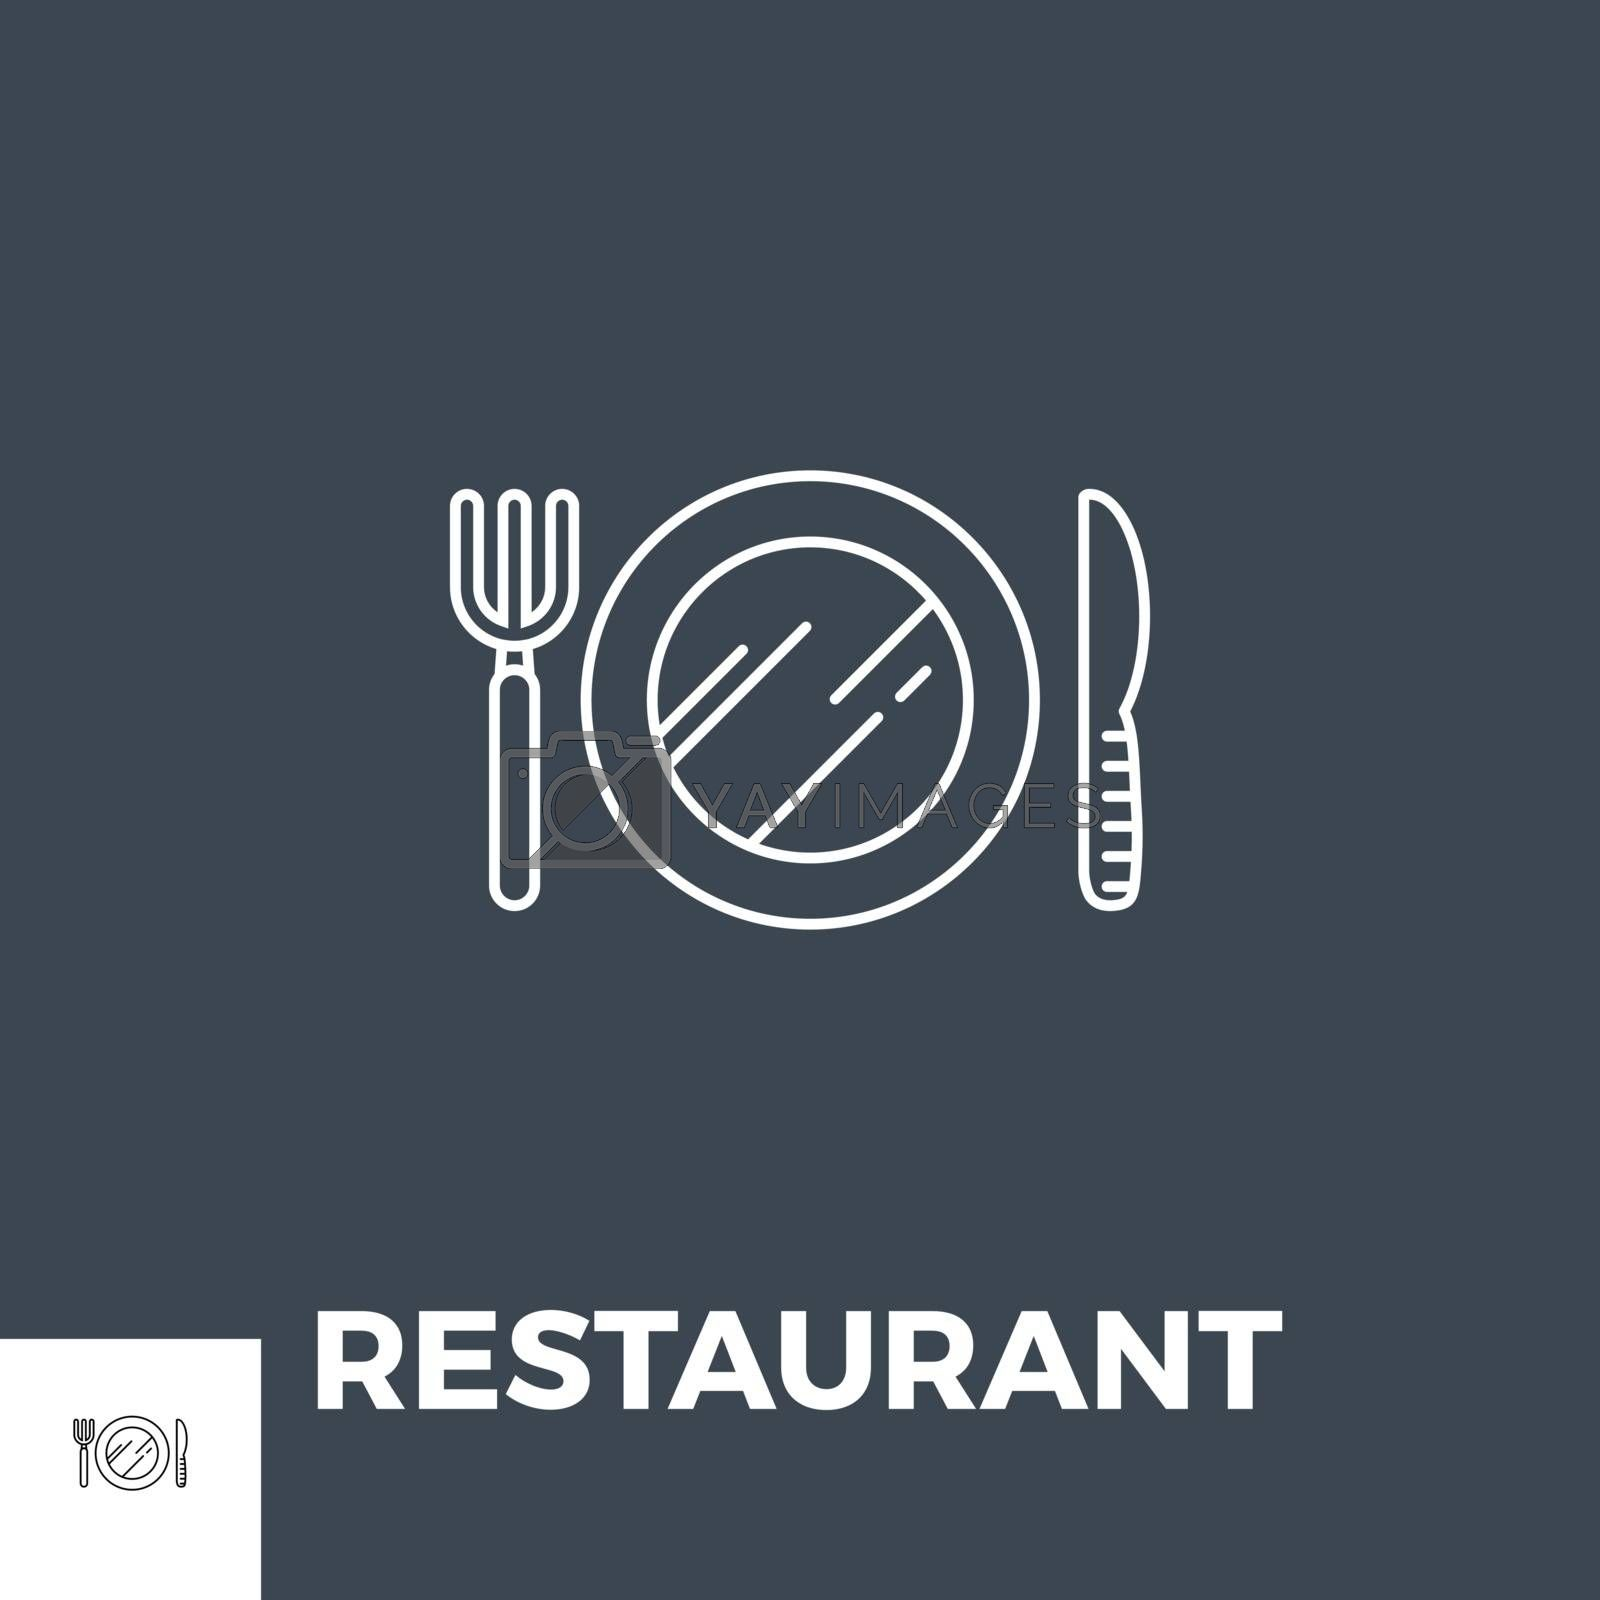 Restaurant Vector Thin Line Icon. Isolated on Black Background. Vector Illustration.